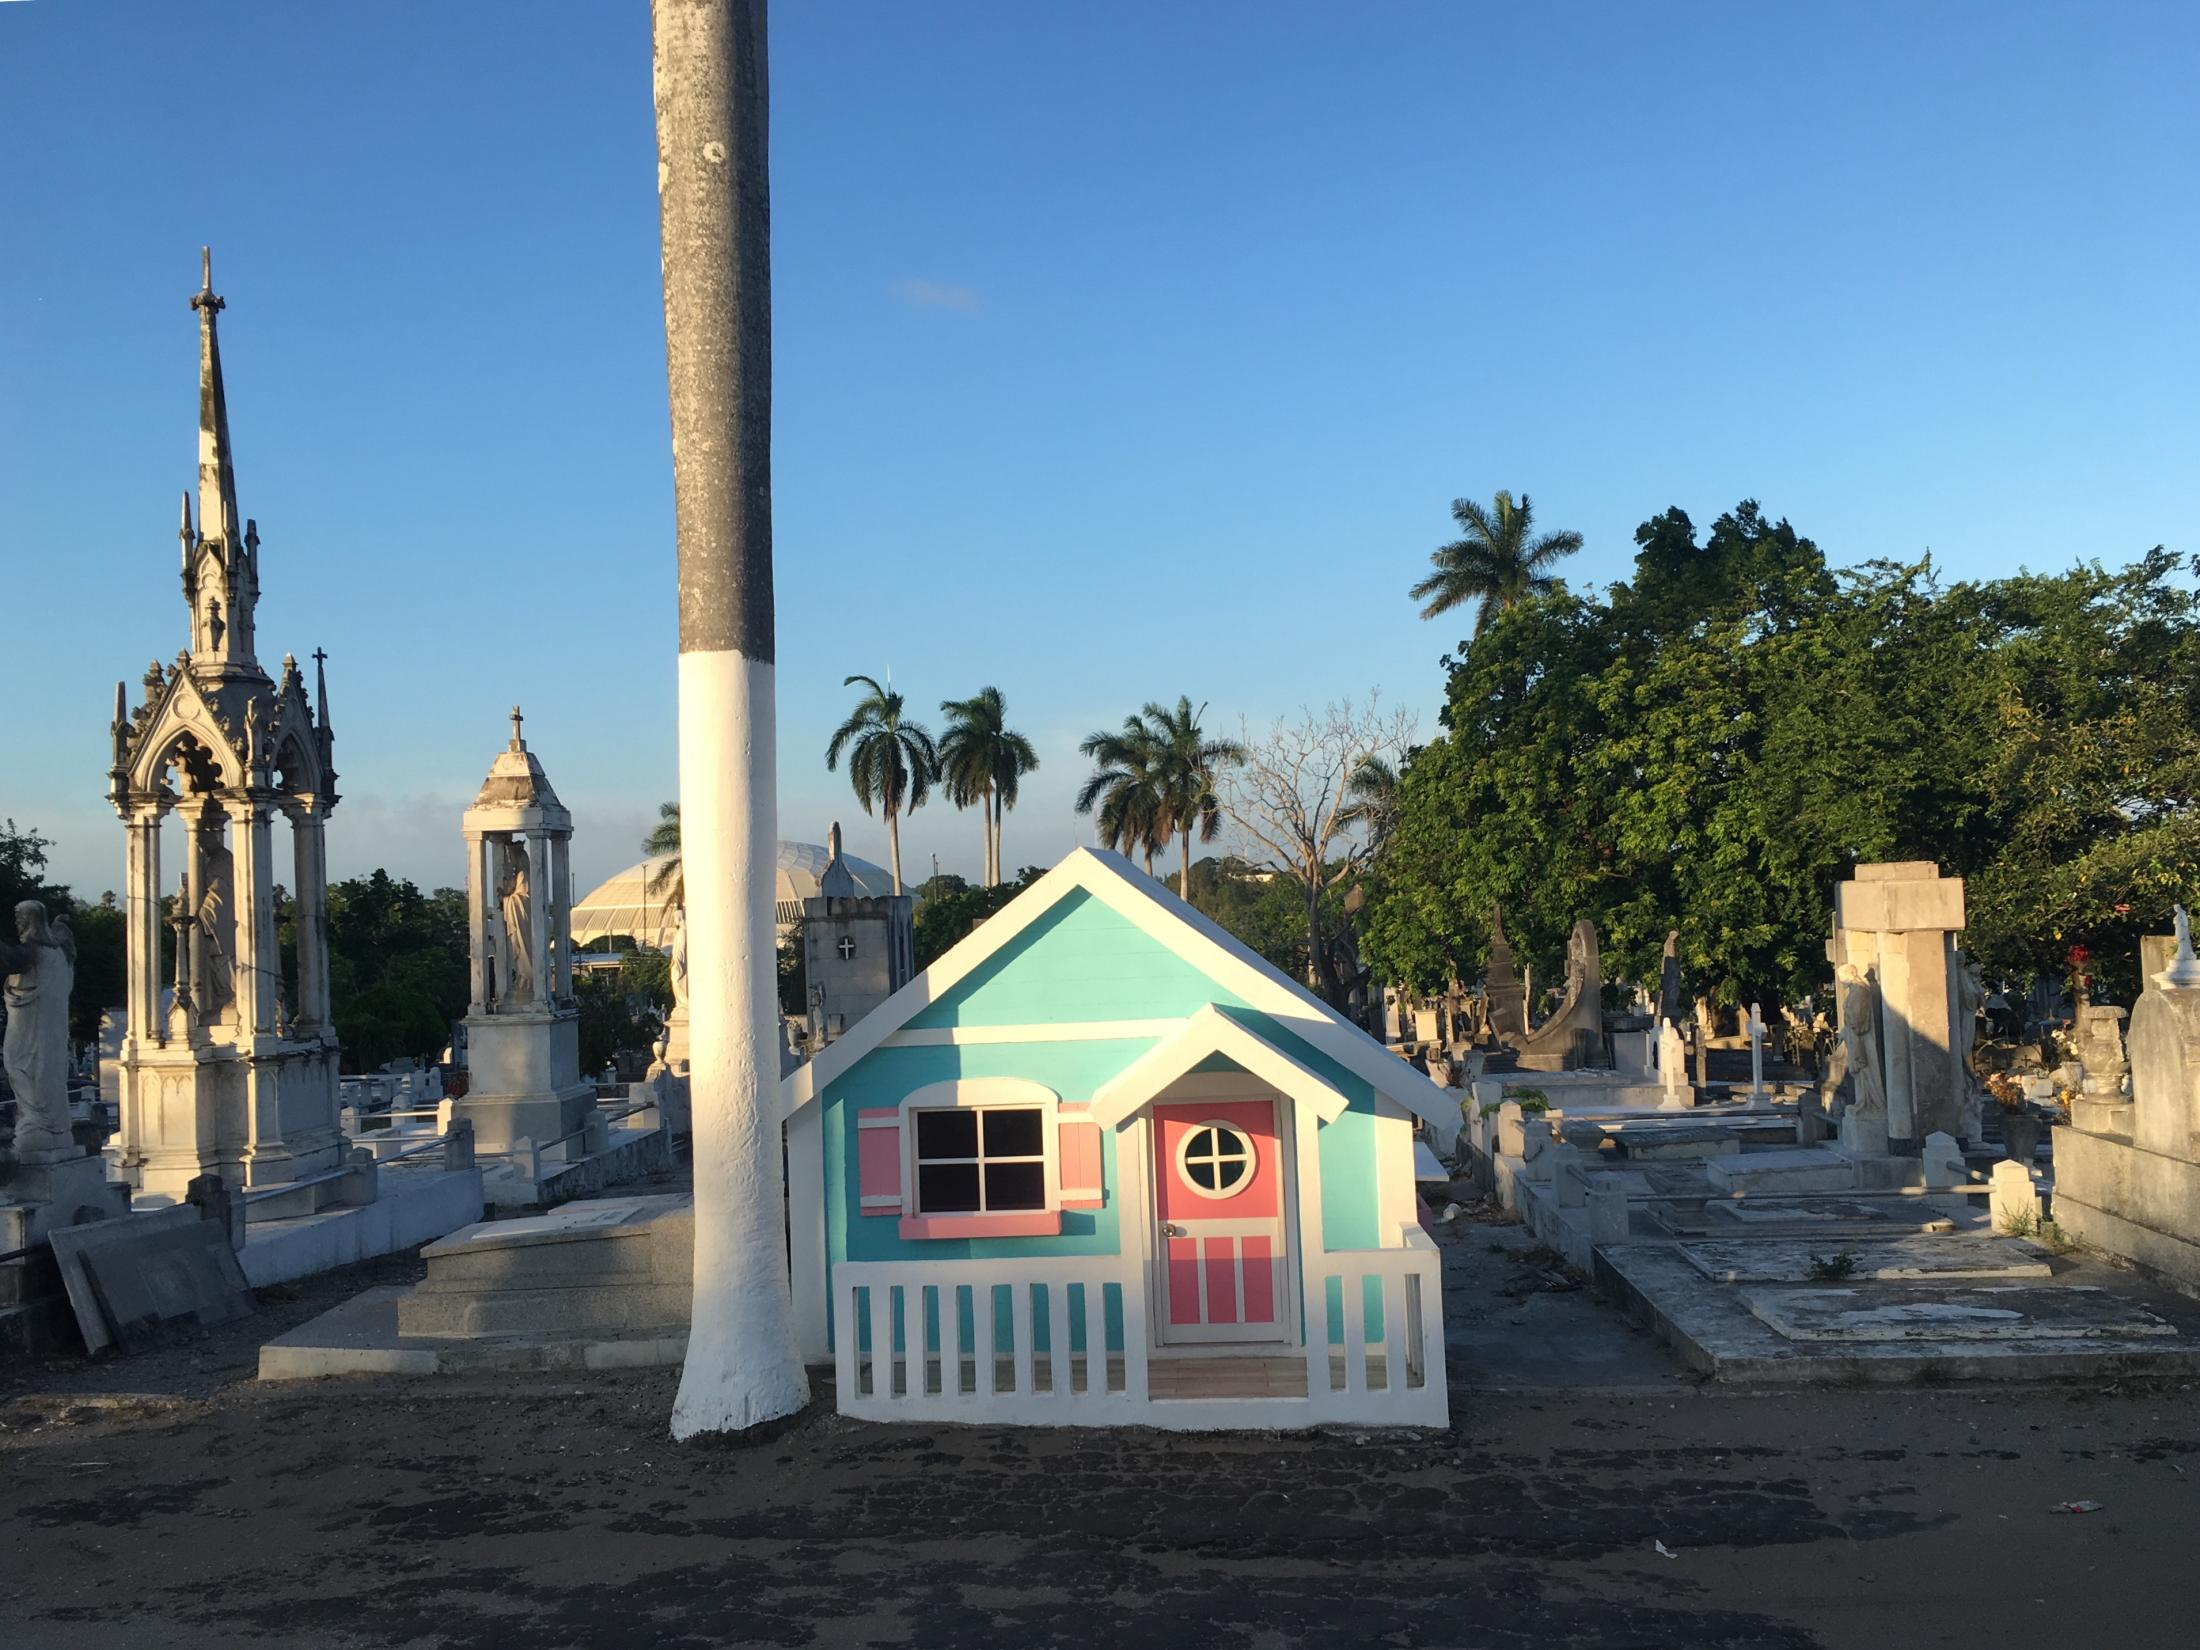 Tampico, Tamaulipas México. 2018. A playhouse built in the local cemetery to honor a child who had passed away. I was accompanying my parents and grandmotherto visitthe graves of diseased family members.